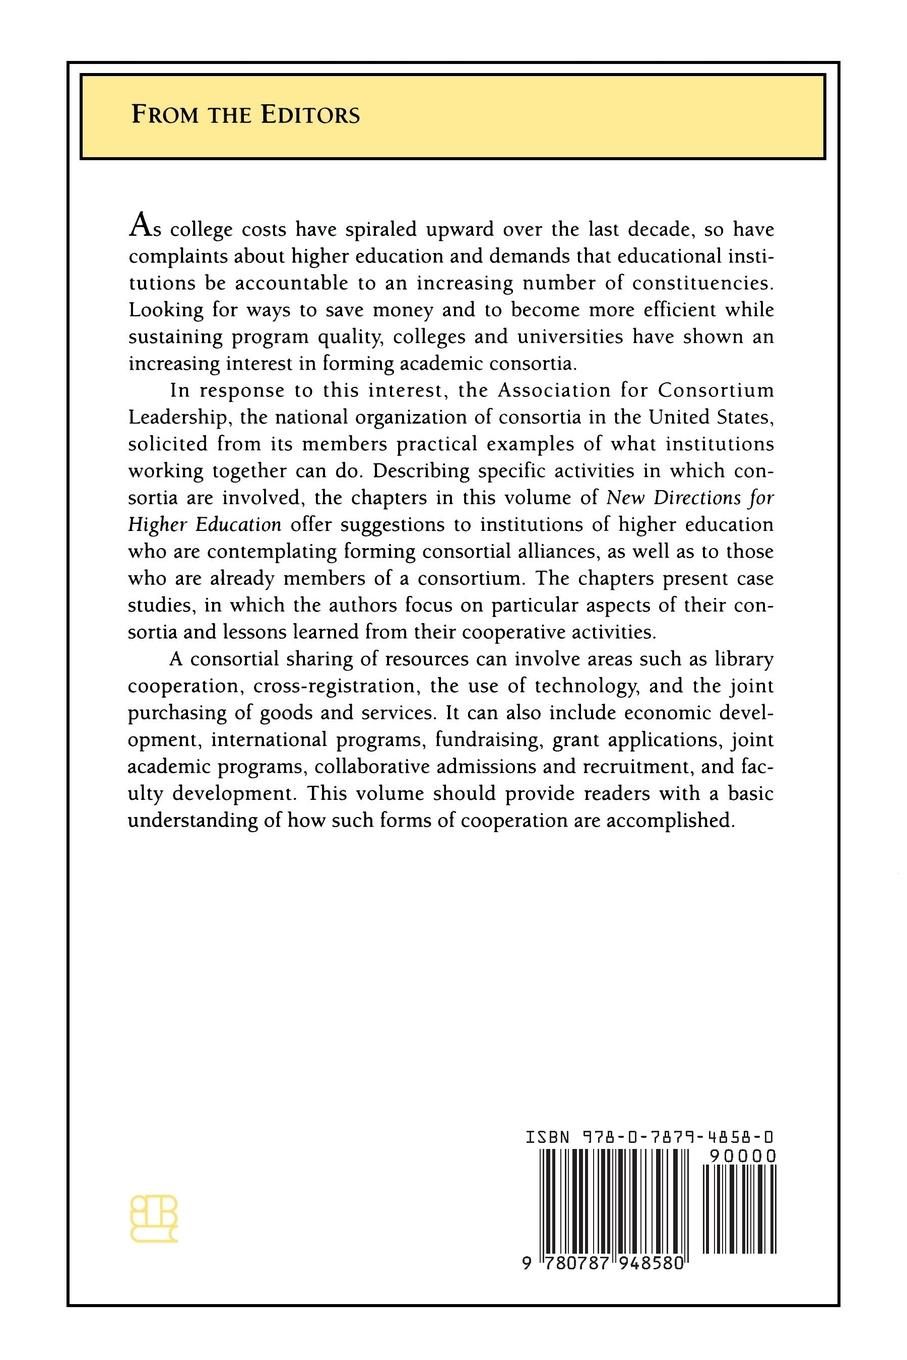 He, Dotolo Lg, Strandness Jt Best Practices in Higher Education Consortia. How Institutions Can Work Together: New Directions for Higher Education, Number 106 dina maramba c asian americans in higher education charting new realities aehe volume 40 number 1